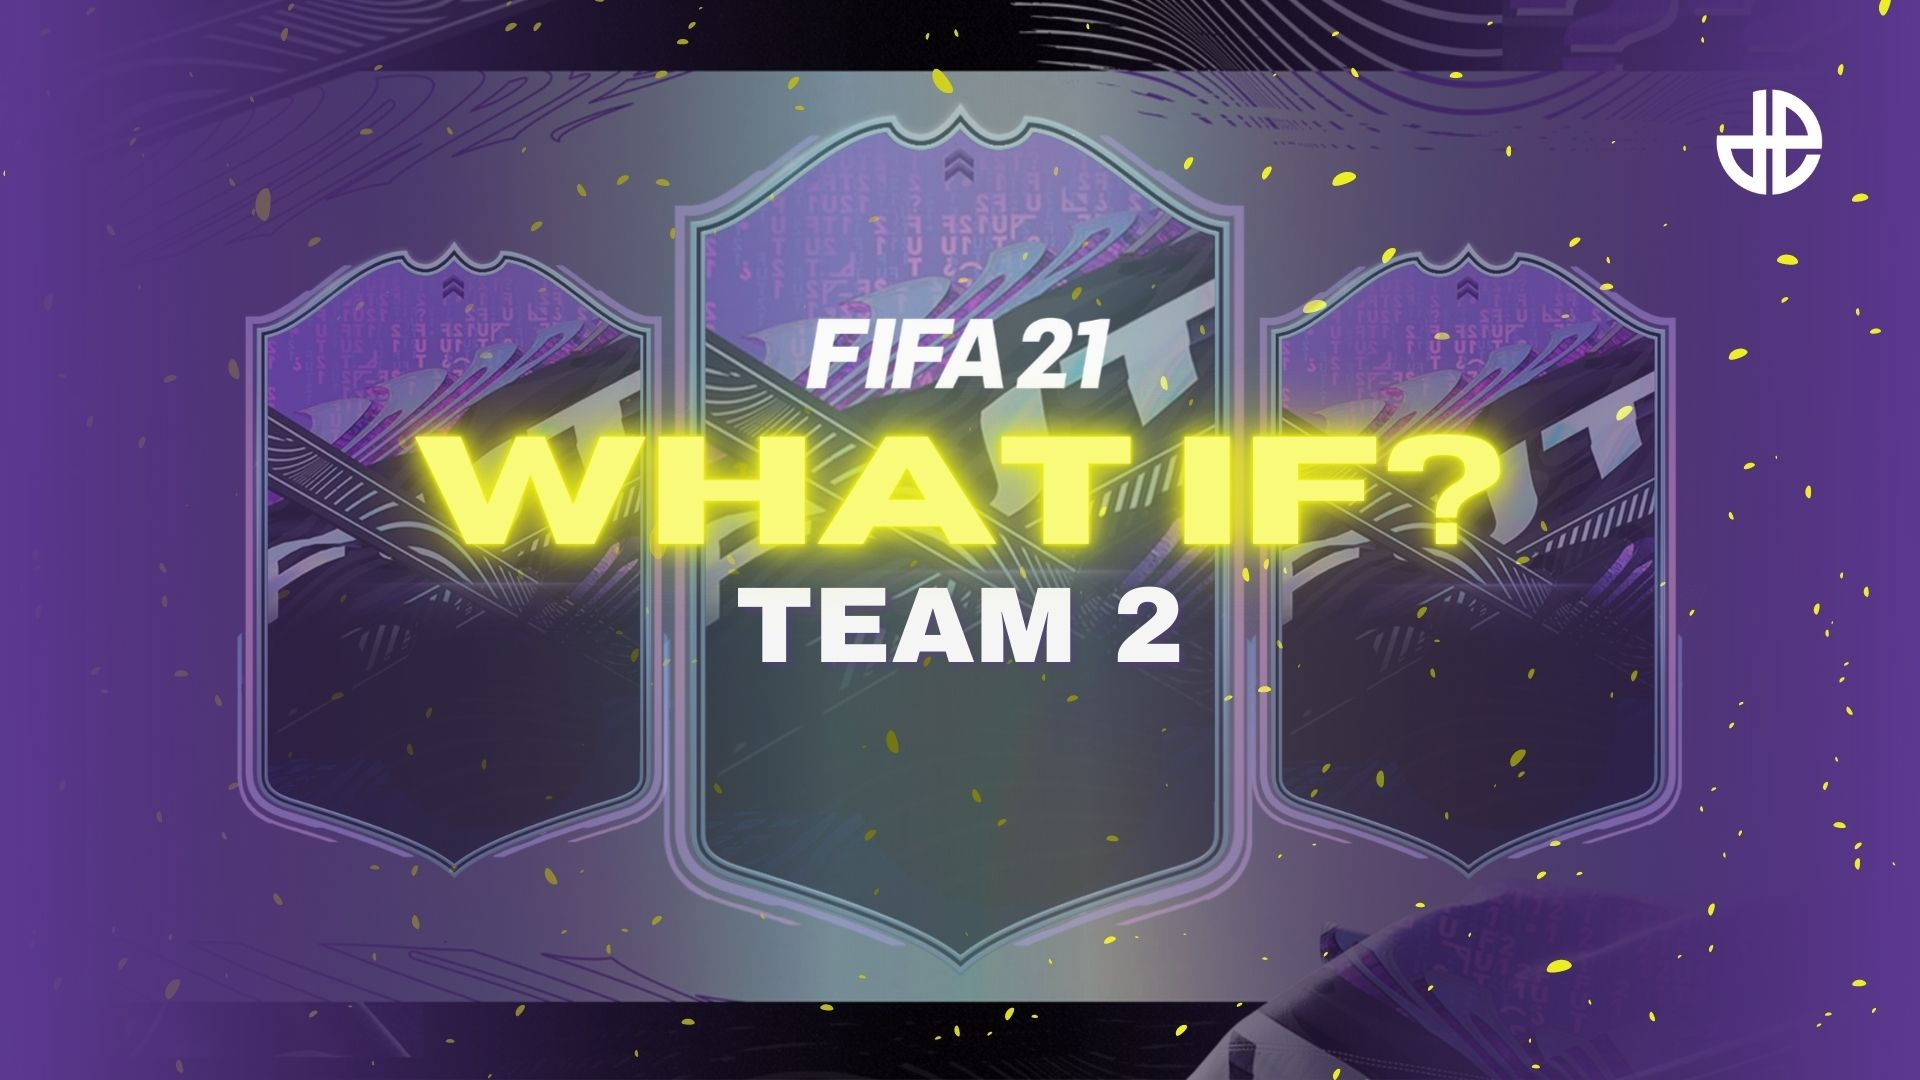 FIFA 21 What If Team 2 revealed